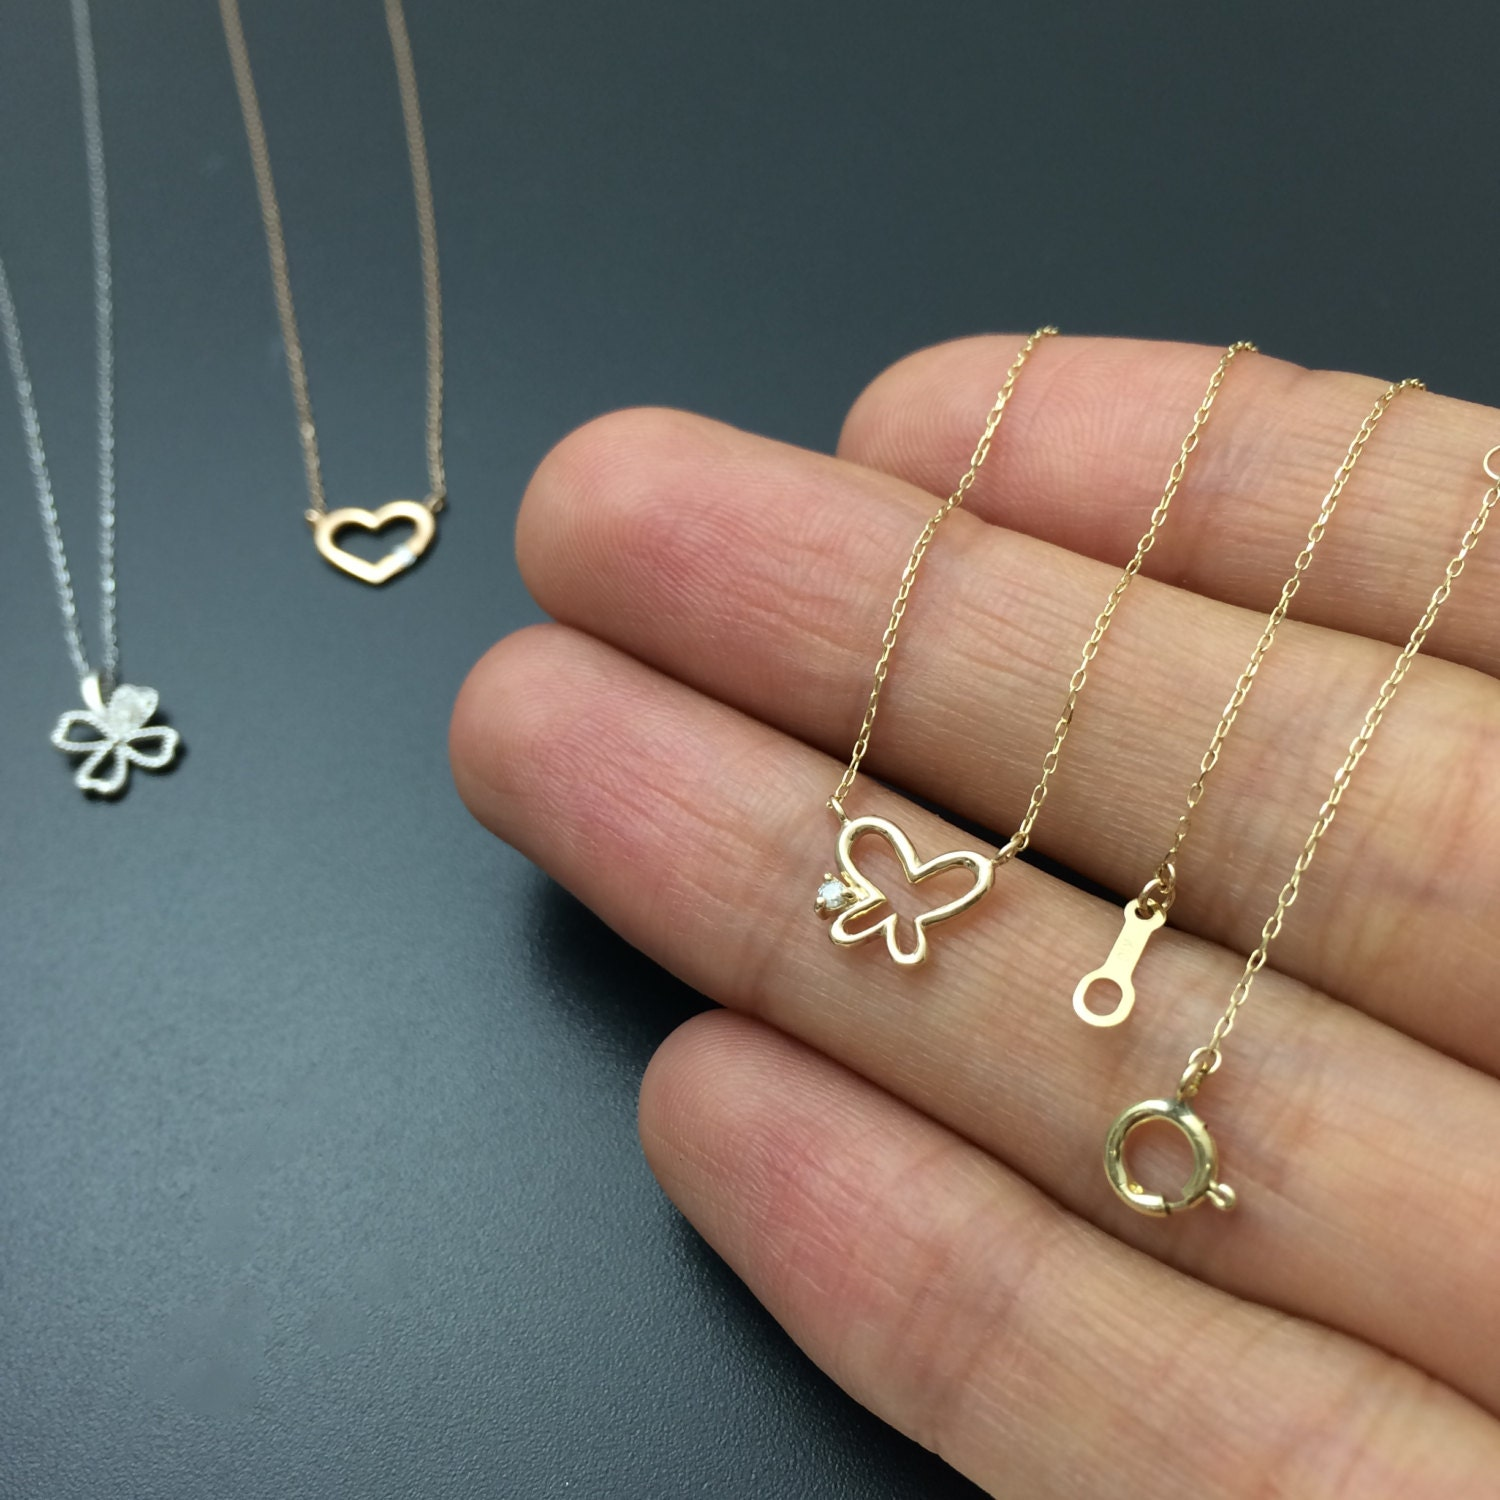 gold butterfly necklace dainty diamond necklace solid gold. Black Bedroom Furniture Sets. Home Design Ideas